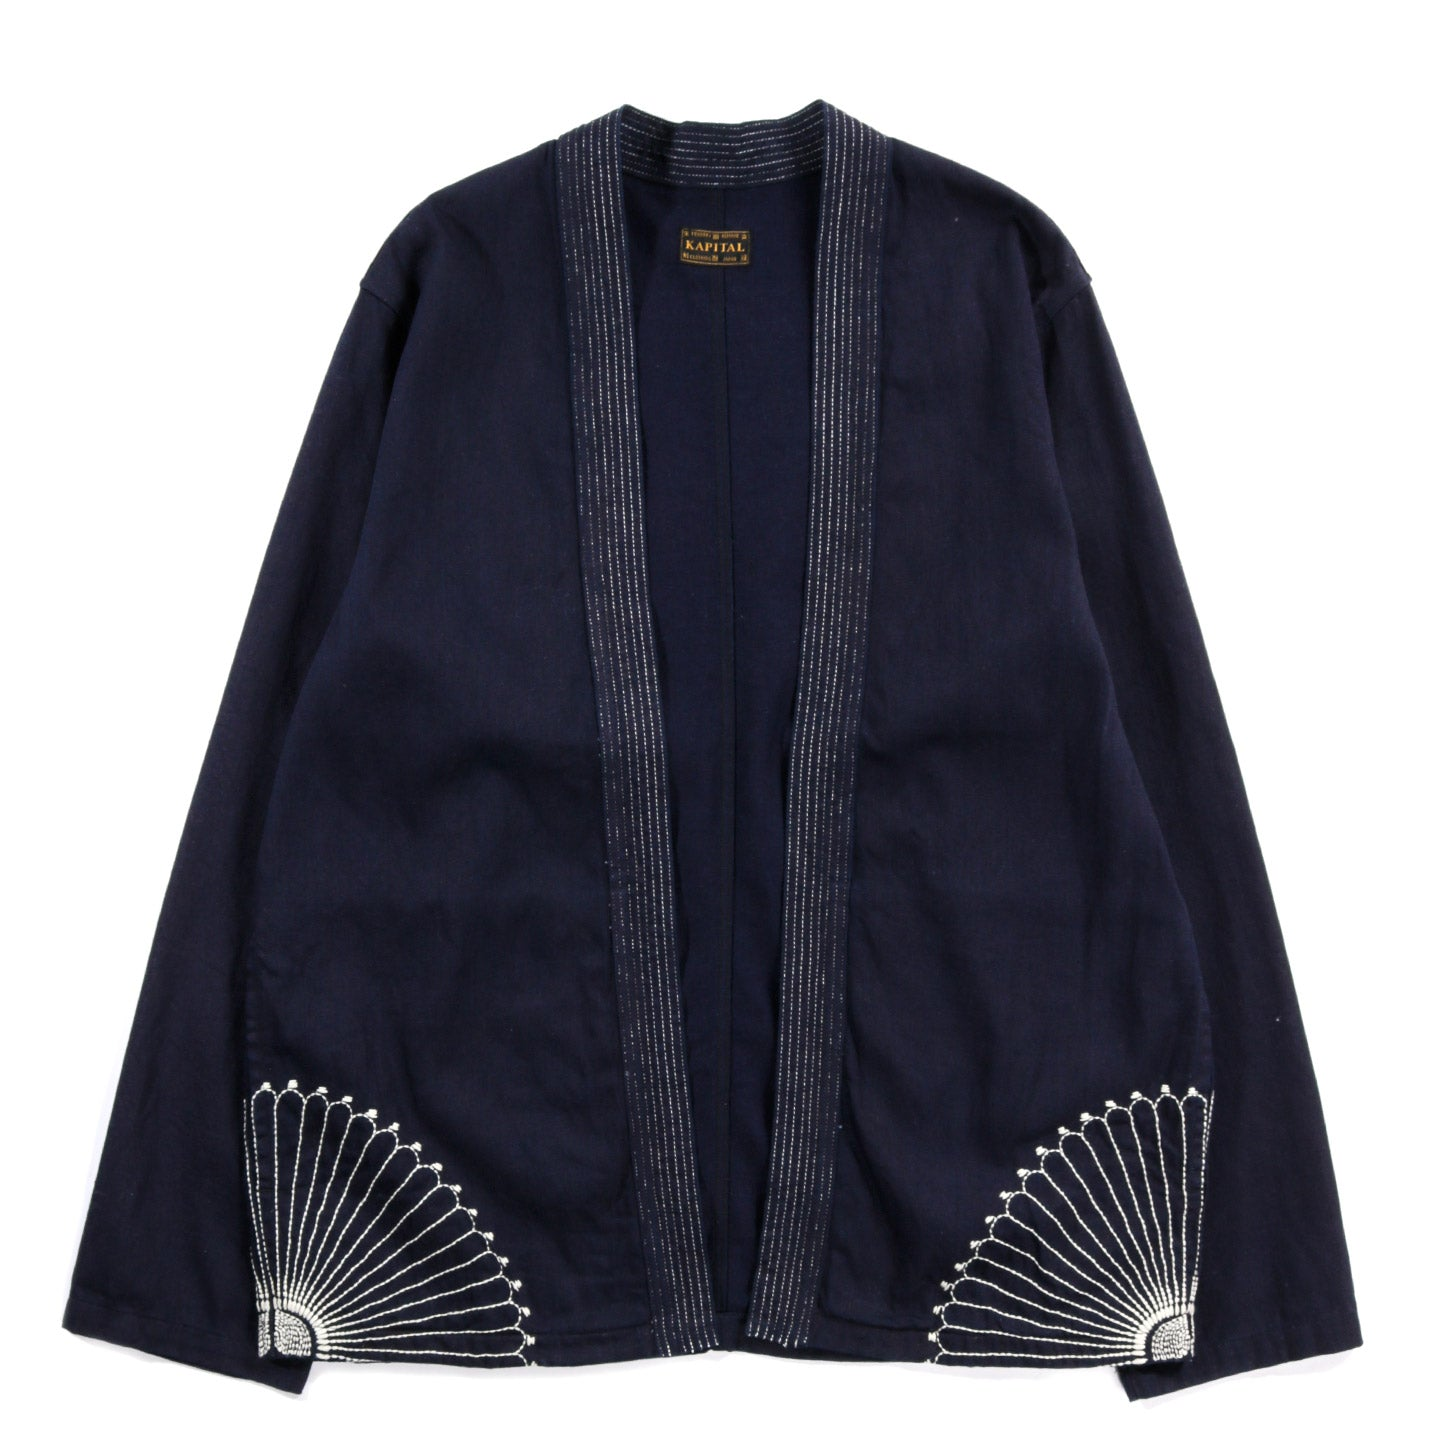 KAPITAL KATSURAGI COTTON RING COAT BLACK